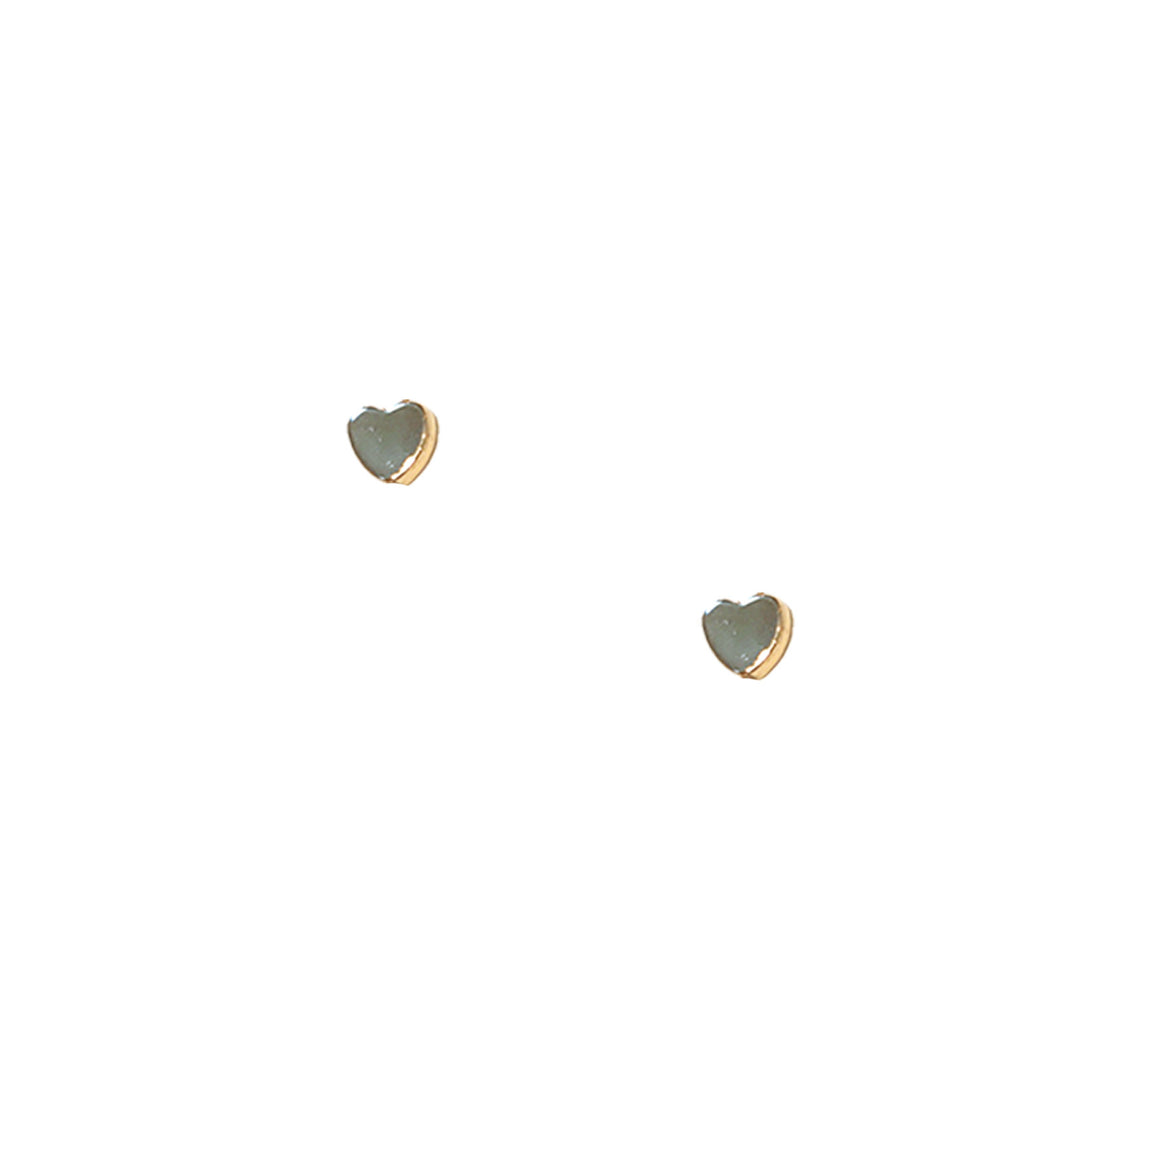 Mini Heart Stud Earrings, earring, Tuleste, Tuleste